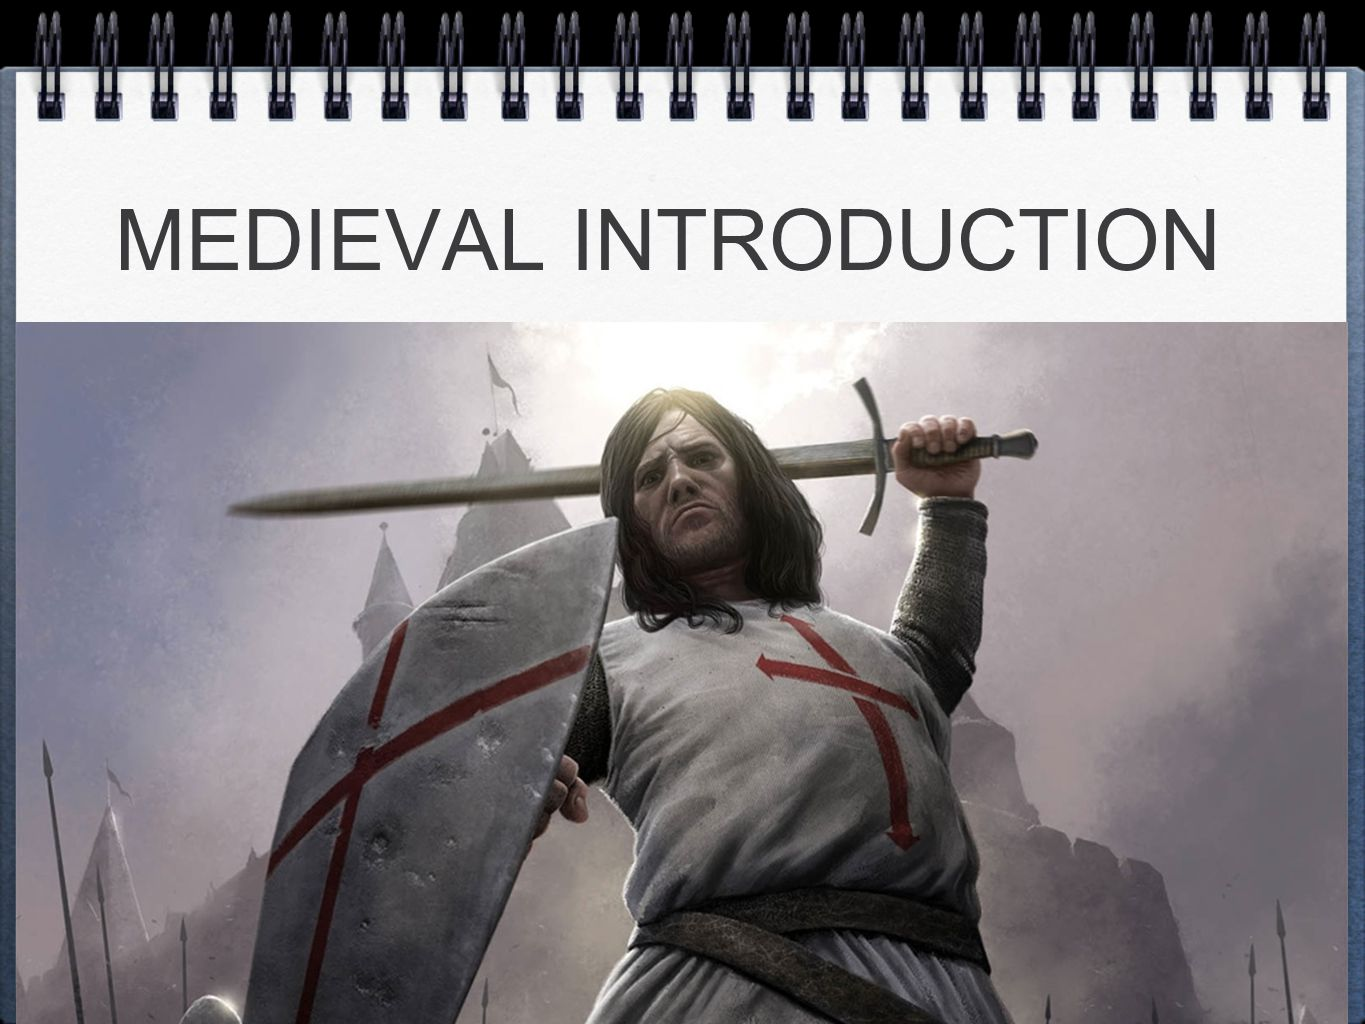 MEDIEVAL INTRODUCTION